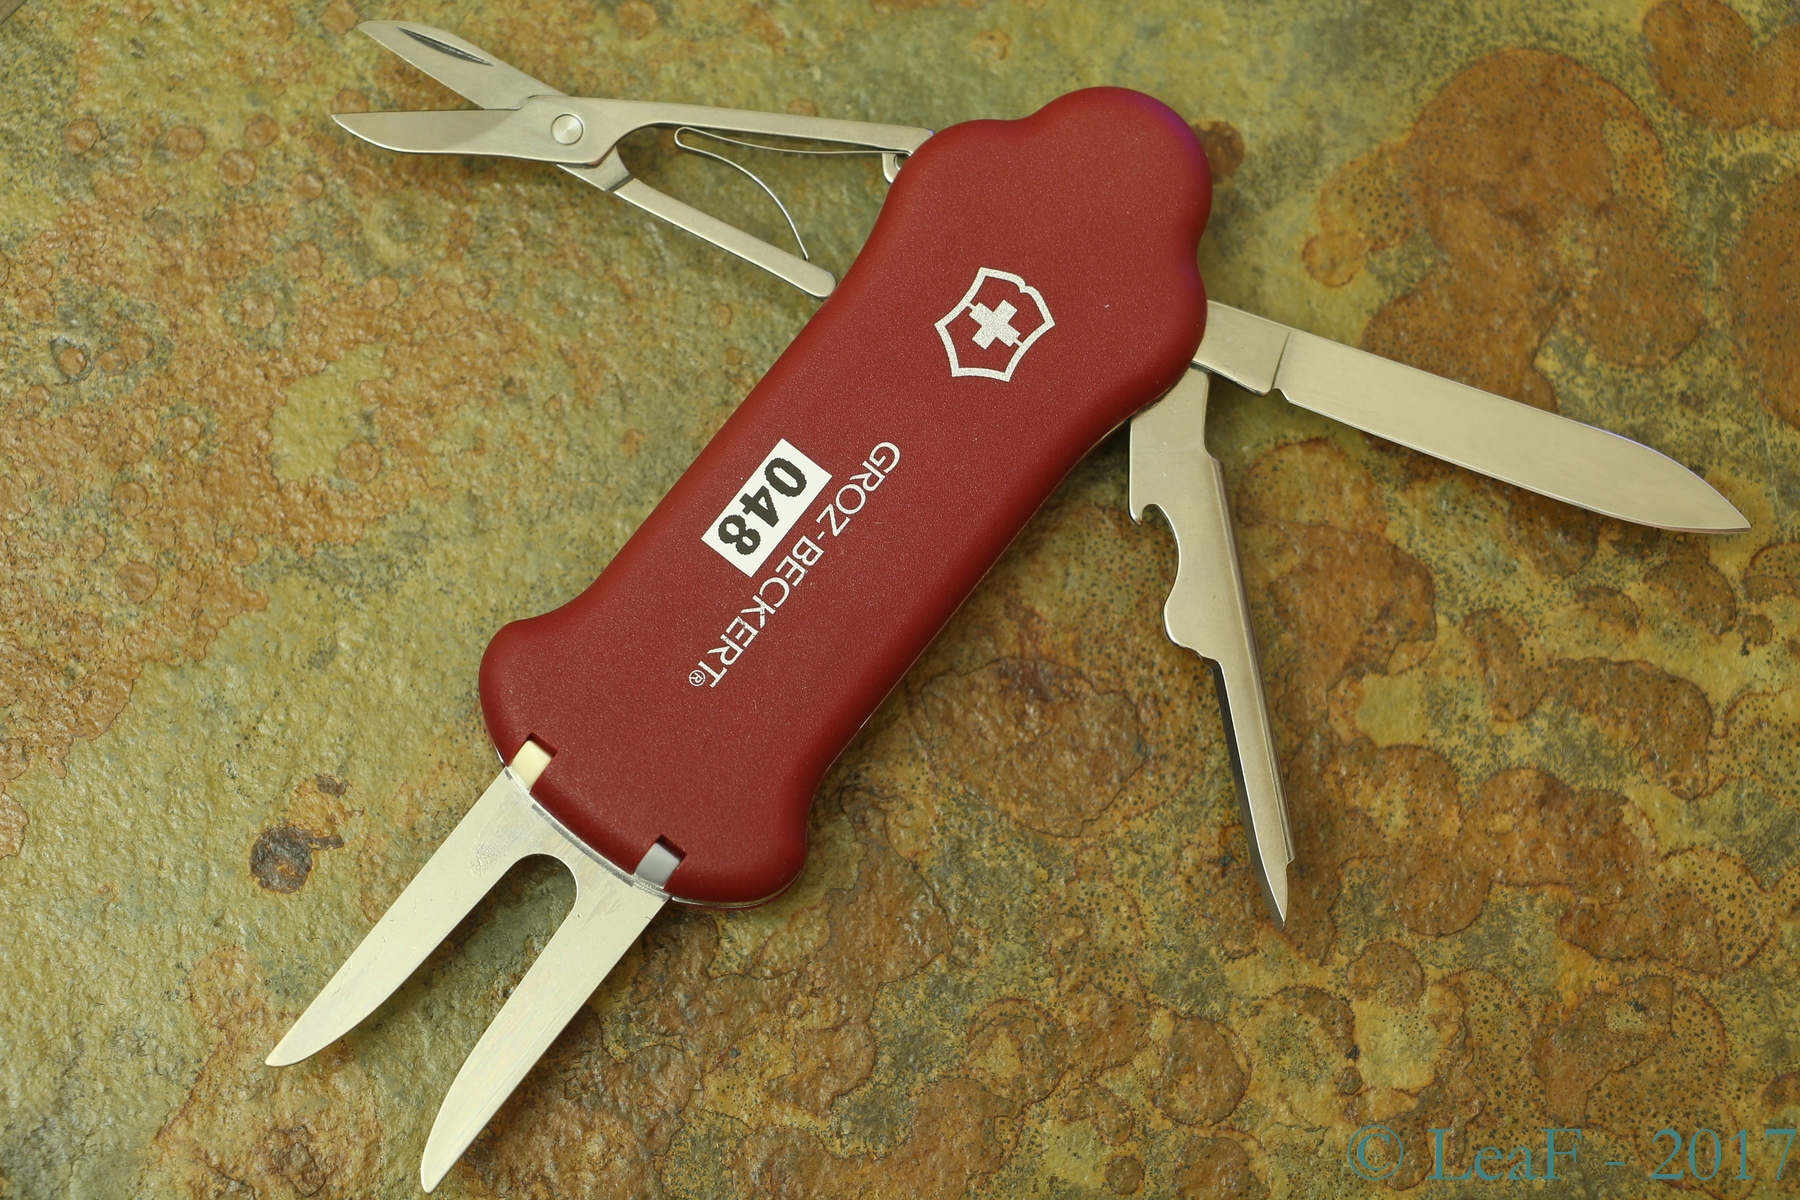 048 Golf Tool Leaf S Victorinox Knives Collection